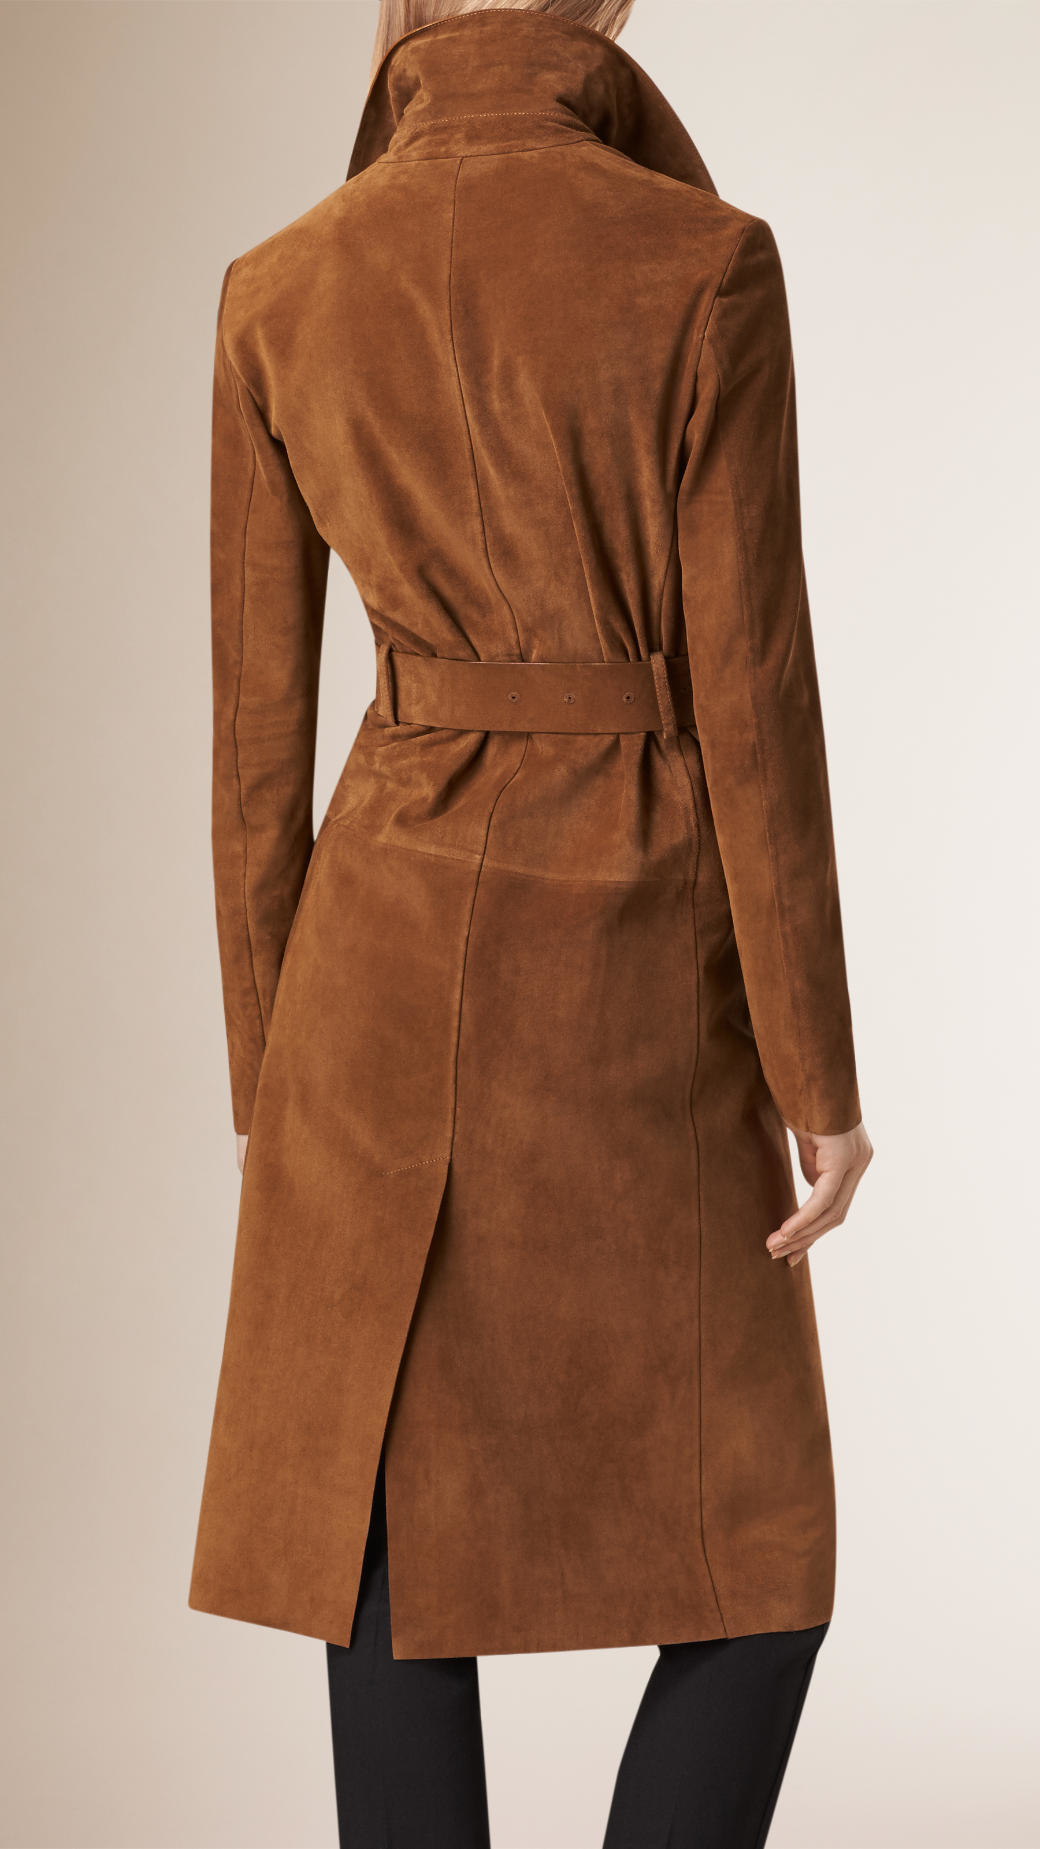 Lyst Burberry Embroidered Suede Trench Coat In Brown